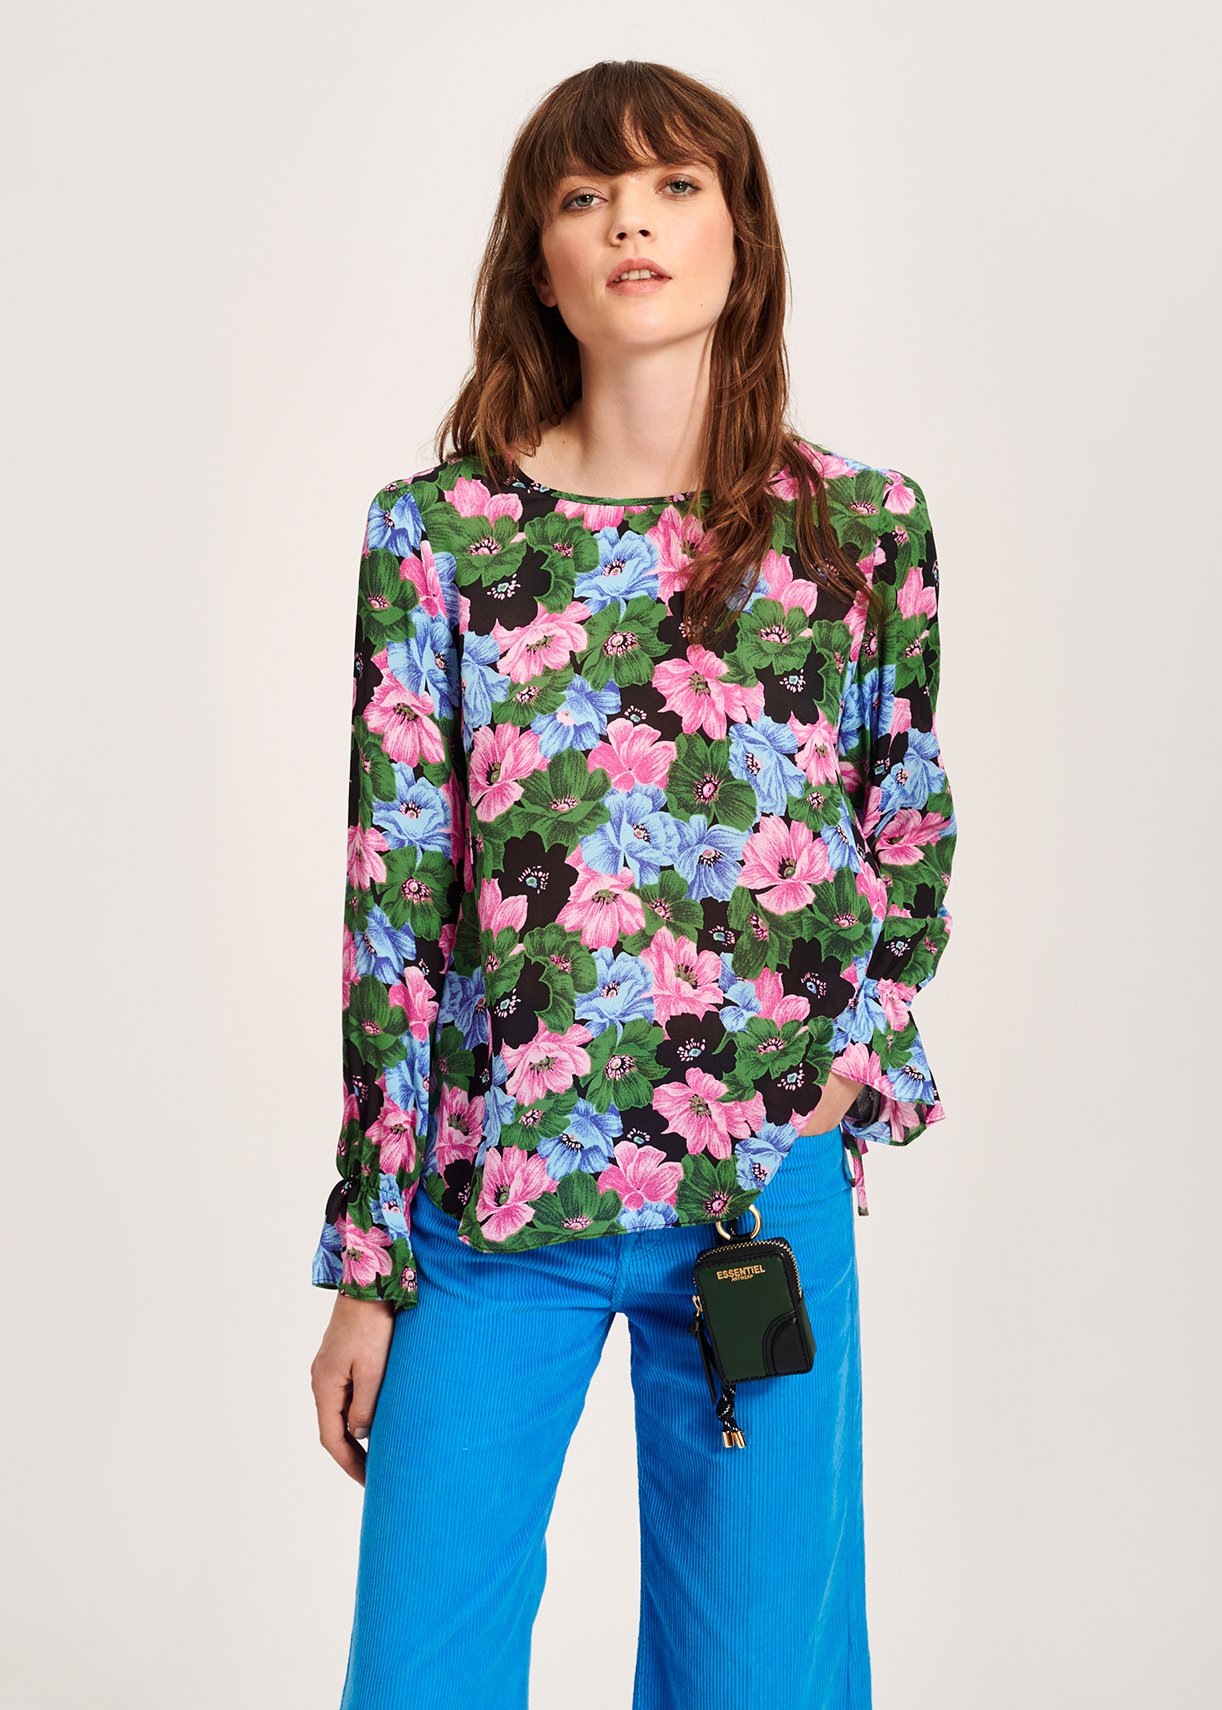 Jane-Young-Essentiel-Antwerp-Floral-Blouse-Model